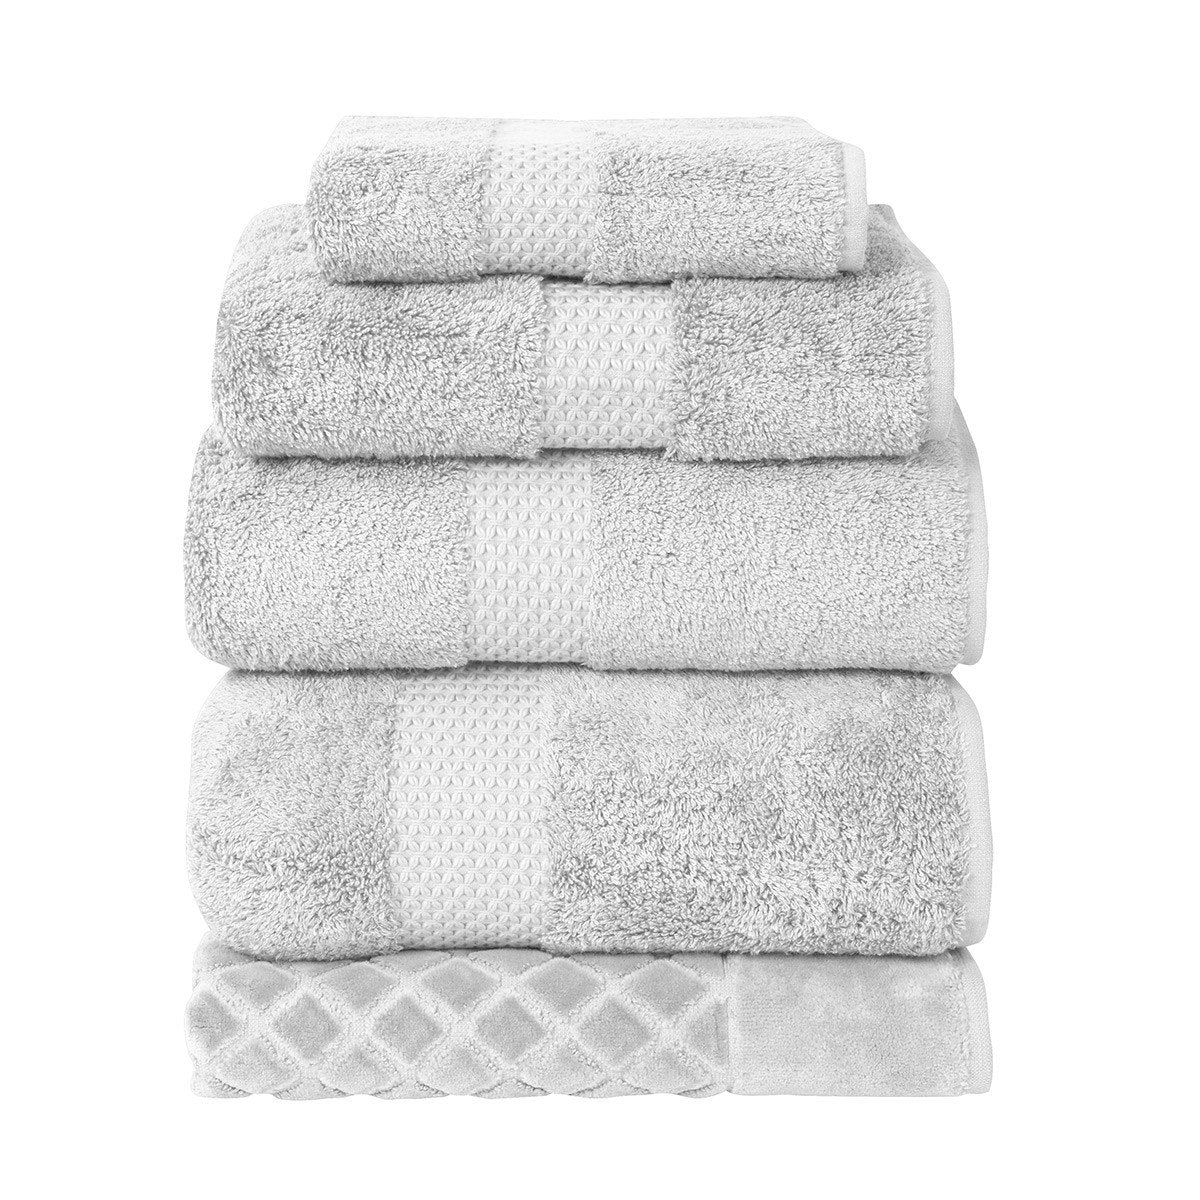 Etoile Silver Bath Collection by Yves Delorme | Fig Linens, Light gray bath linen